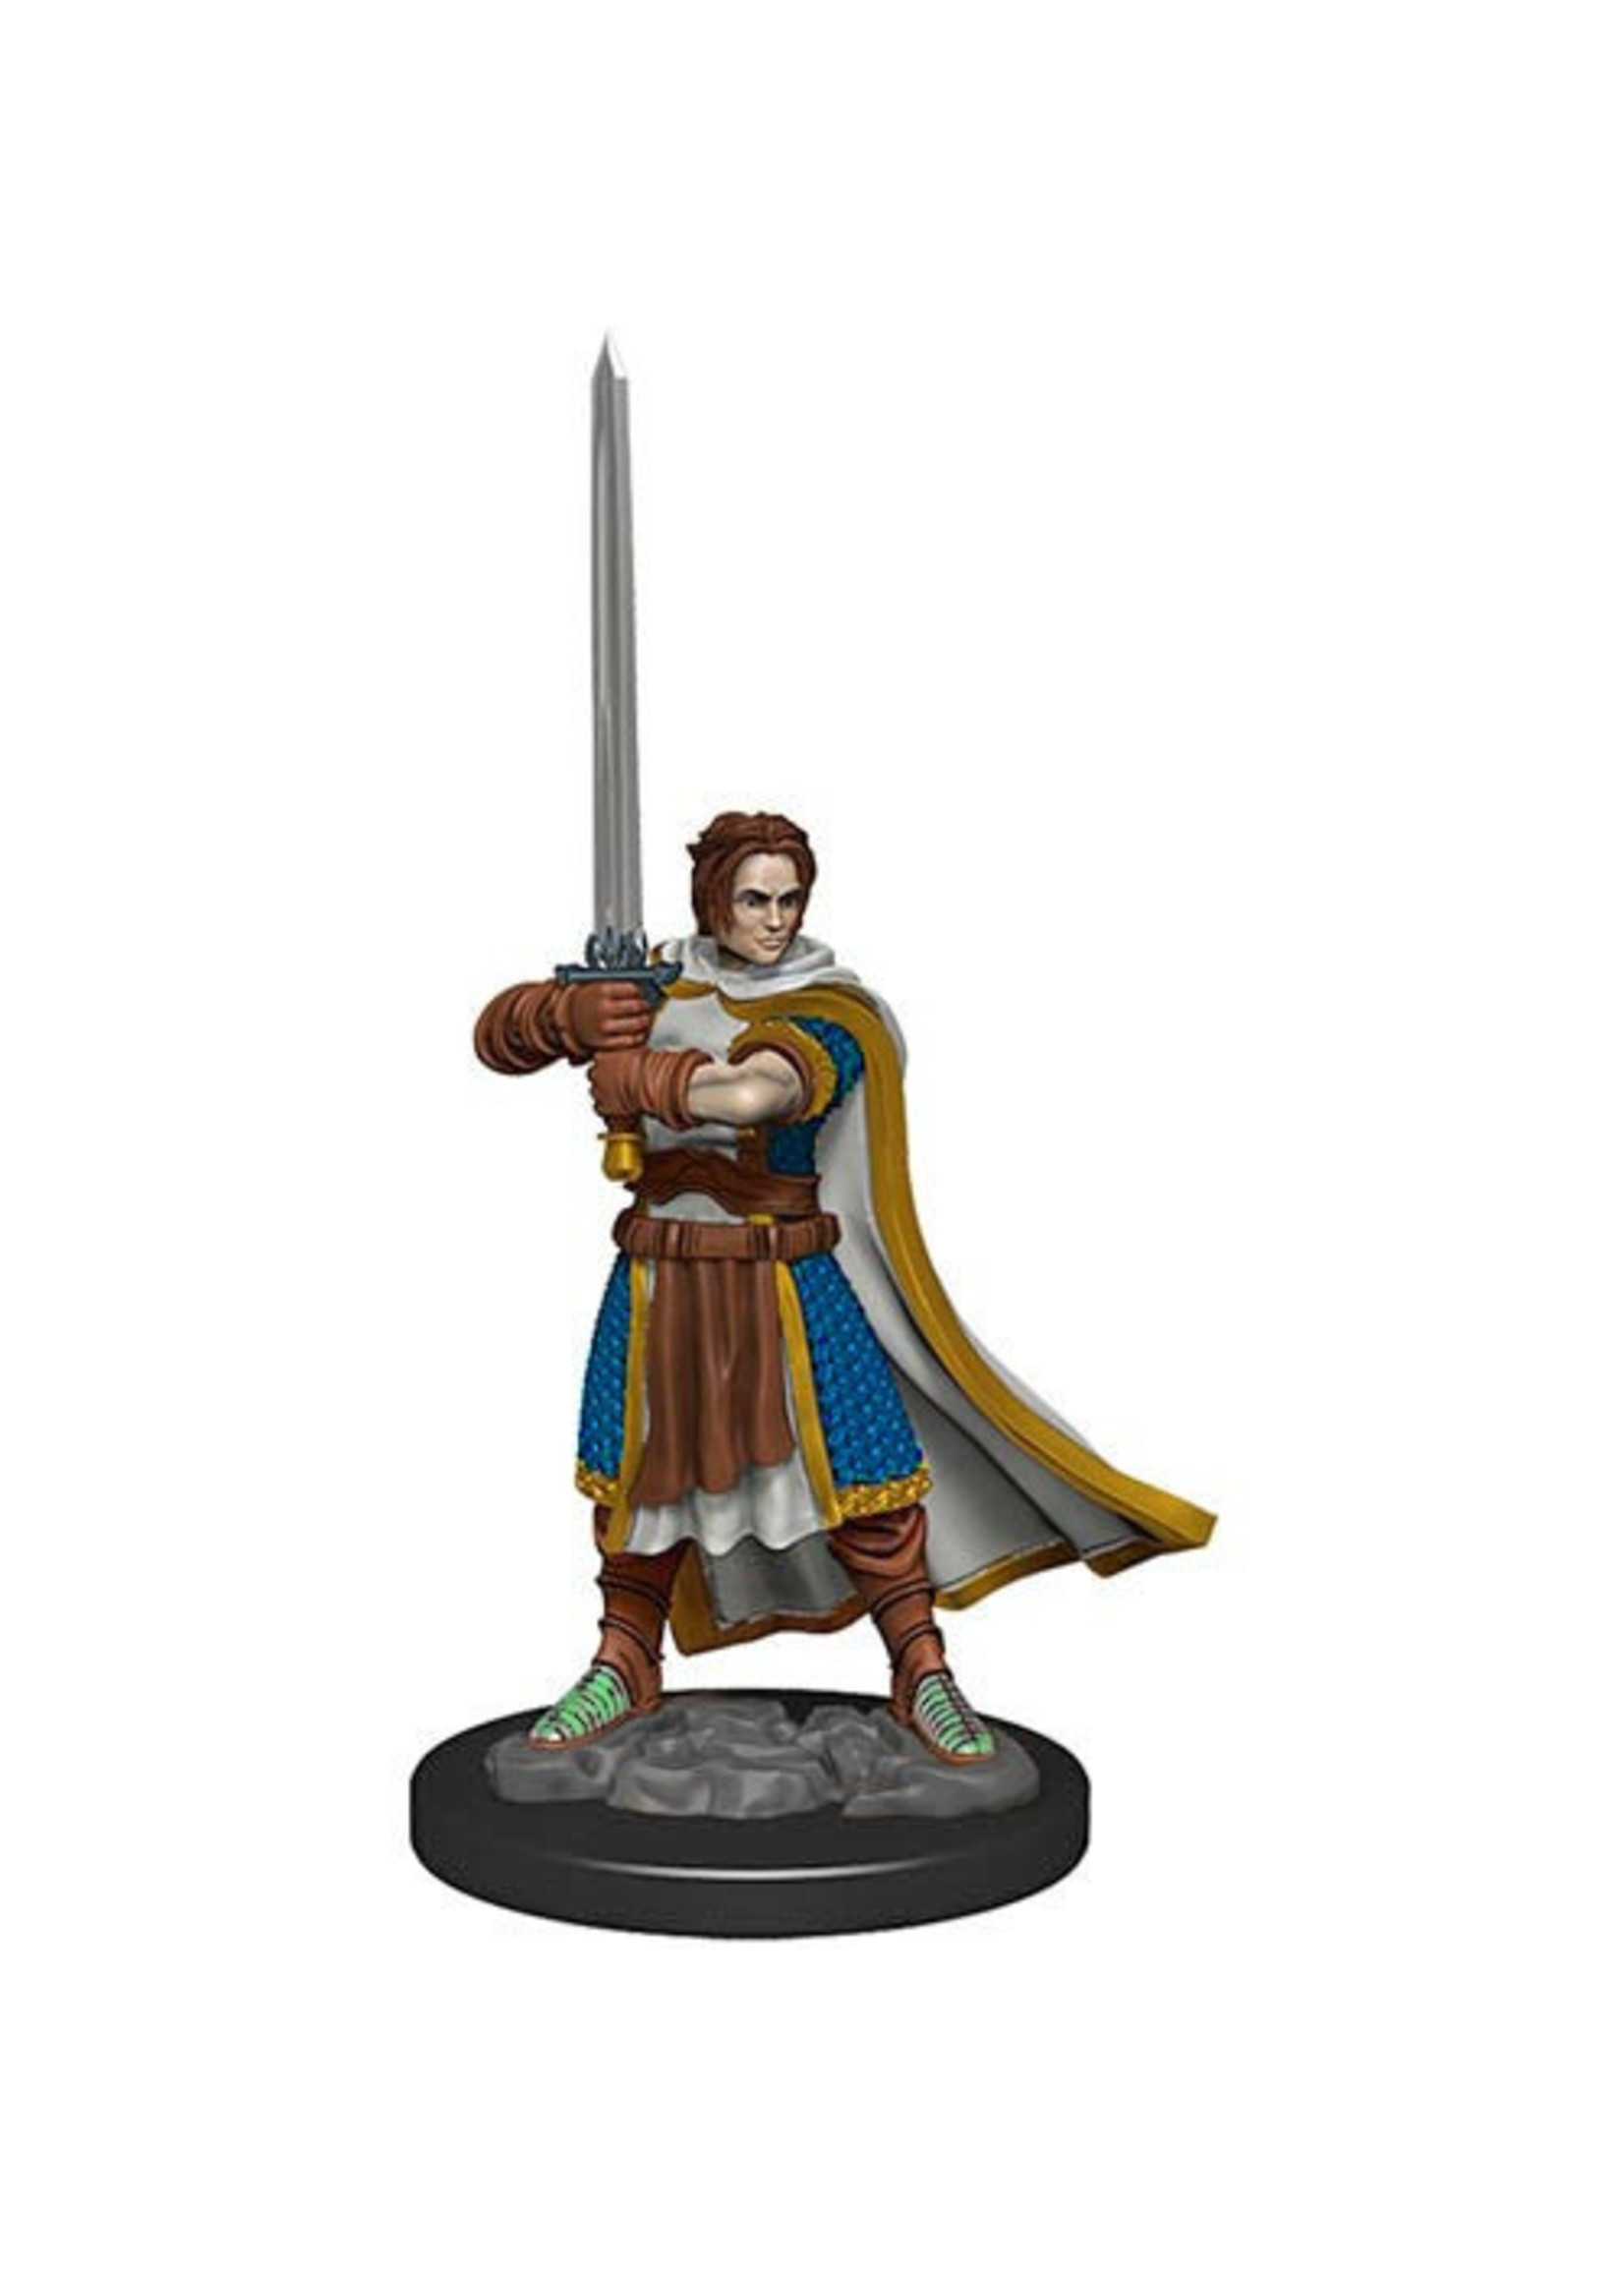 Dungeons & Dragons Fantasy Miniatures: Icons of the Realms Premium Figures W4 Human Cleric Male